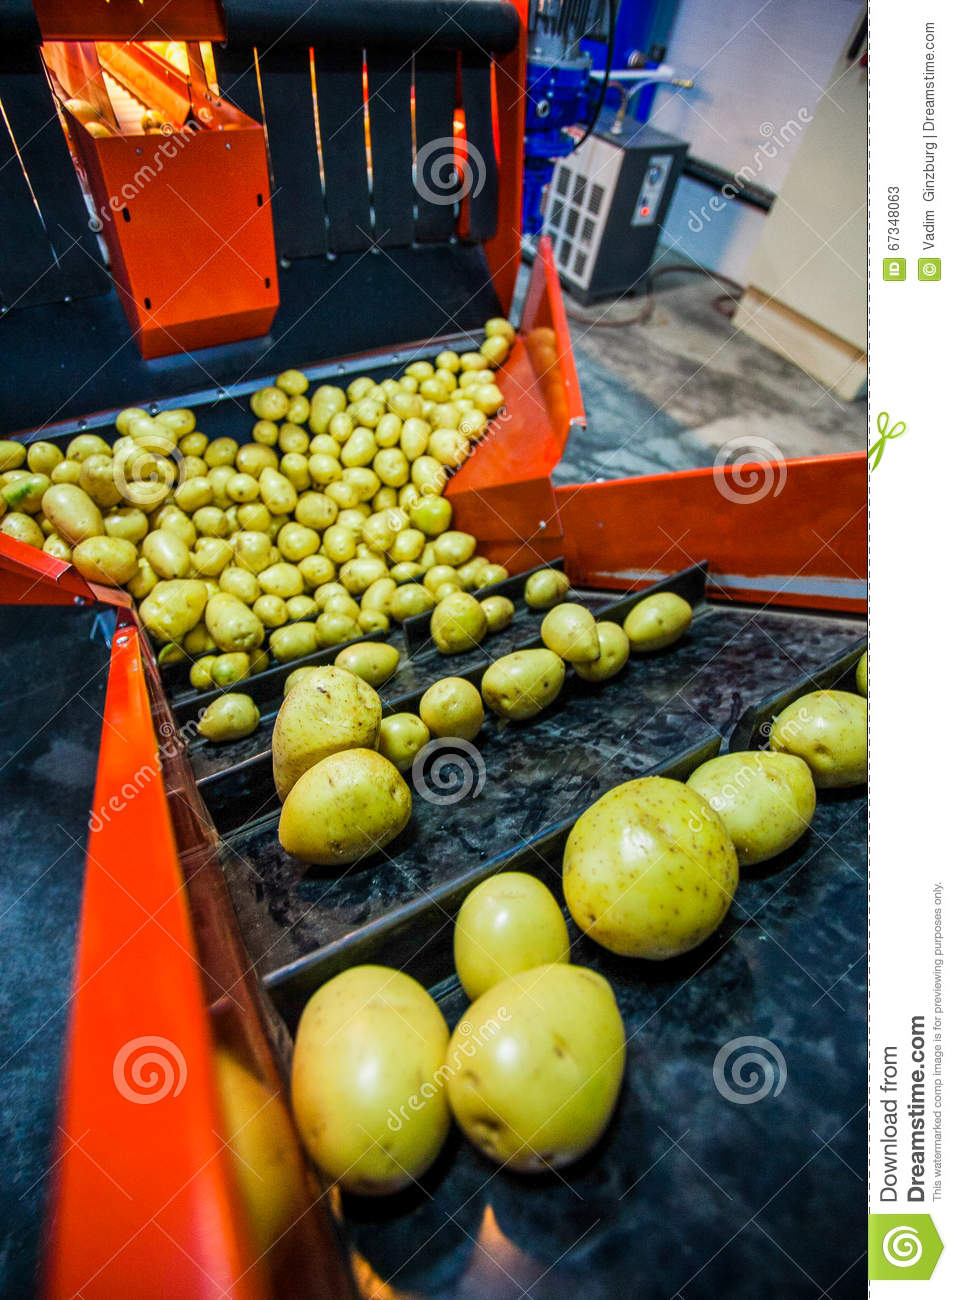 Potato sorting, processing and packing factory